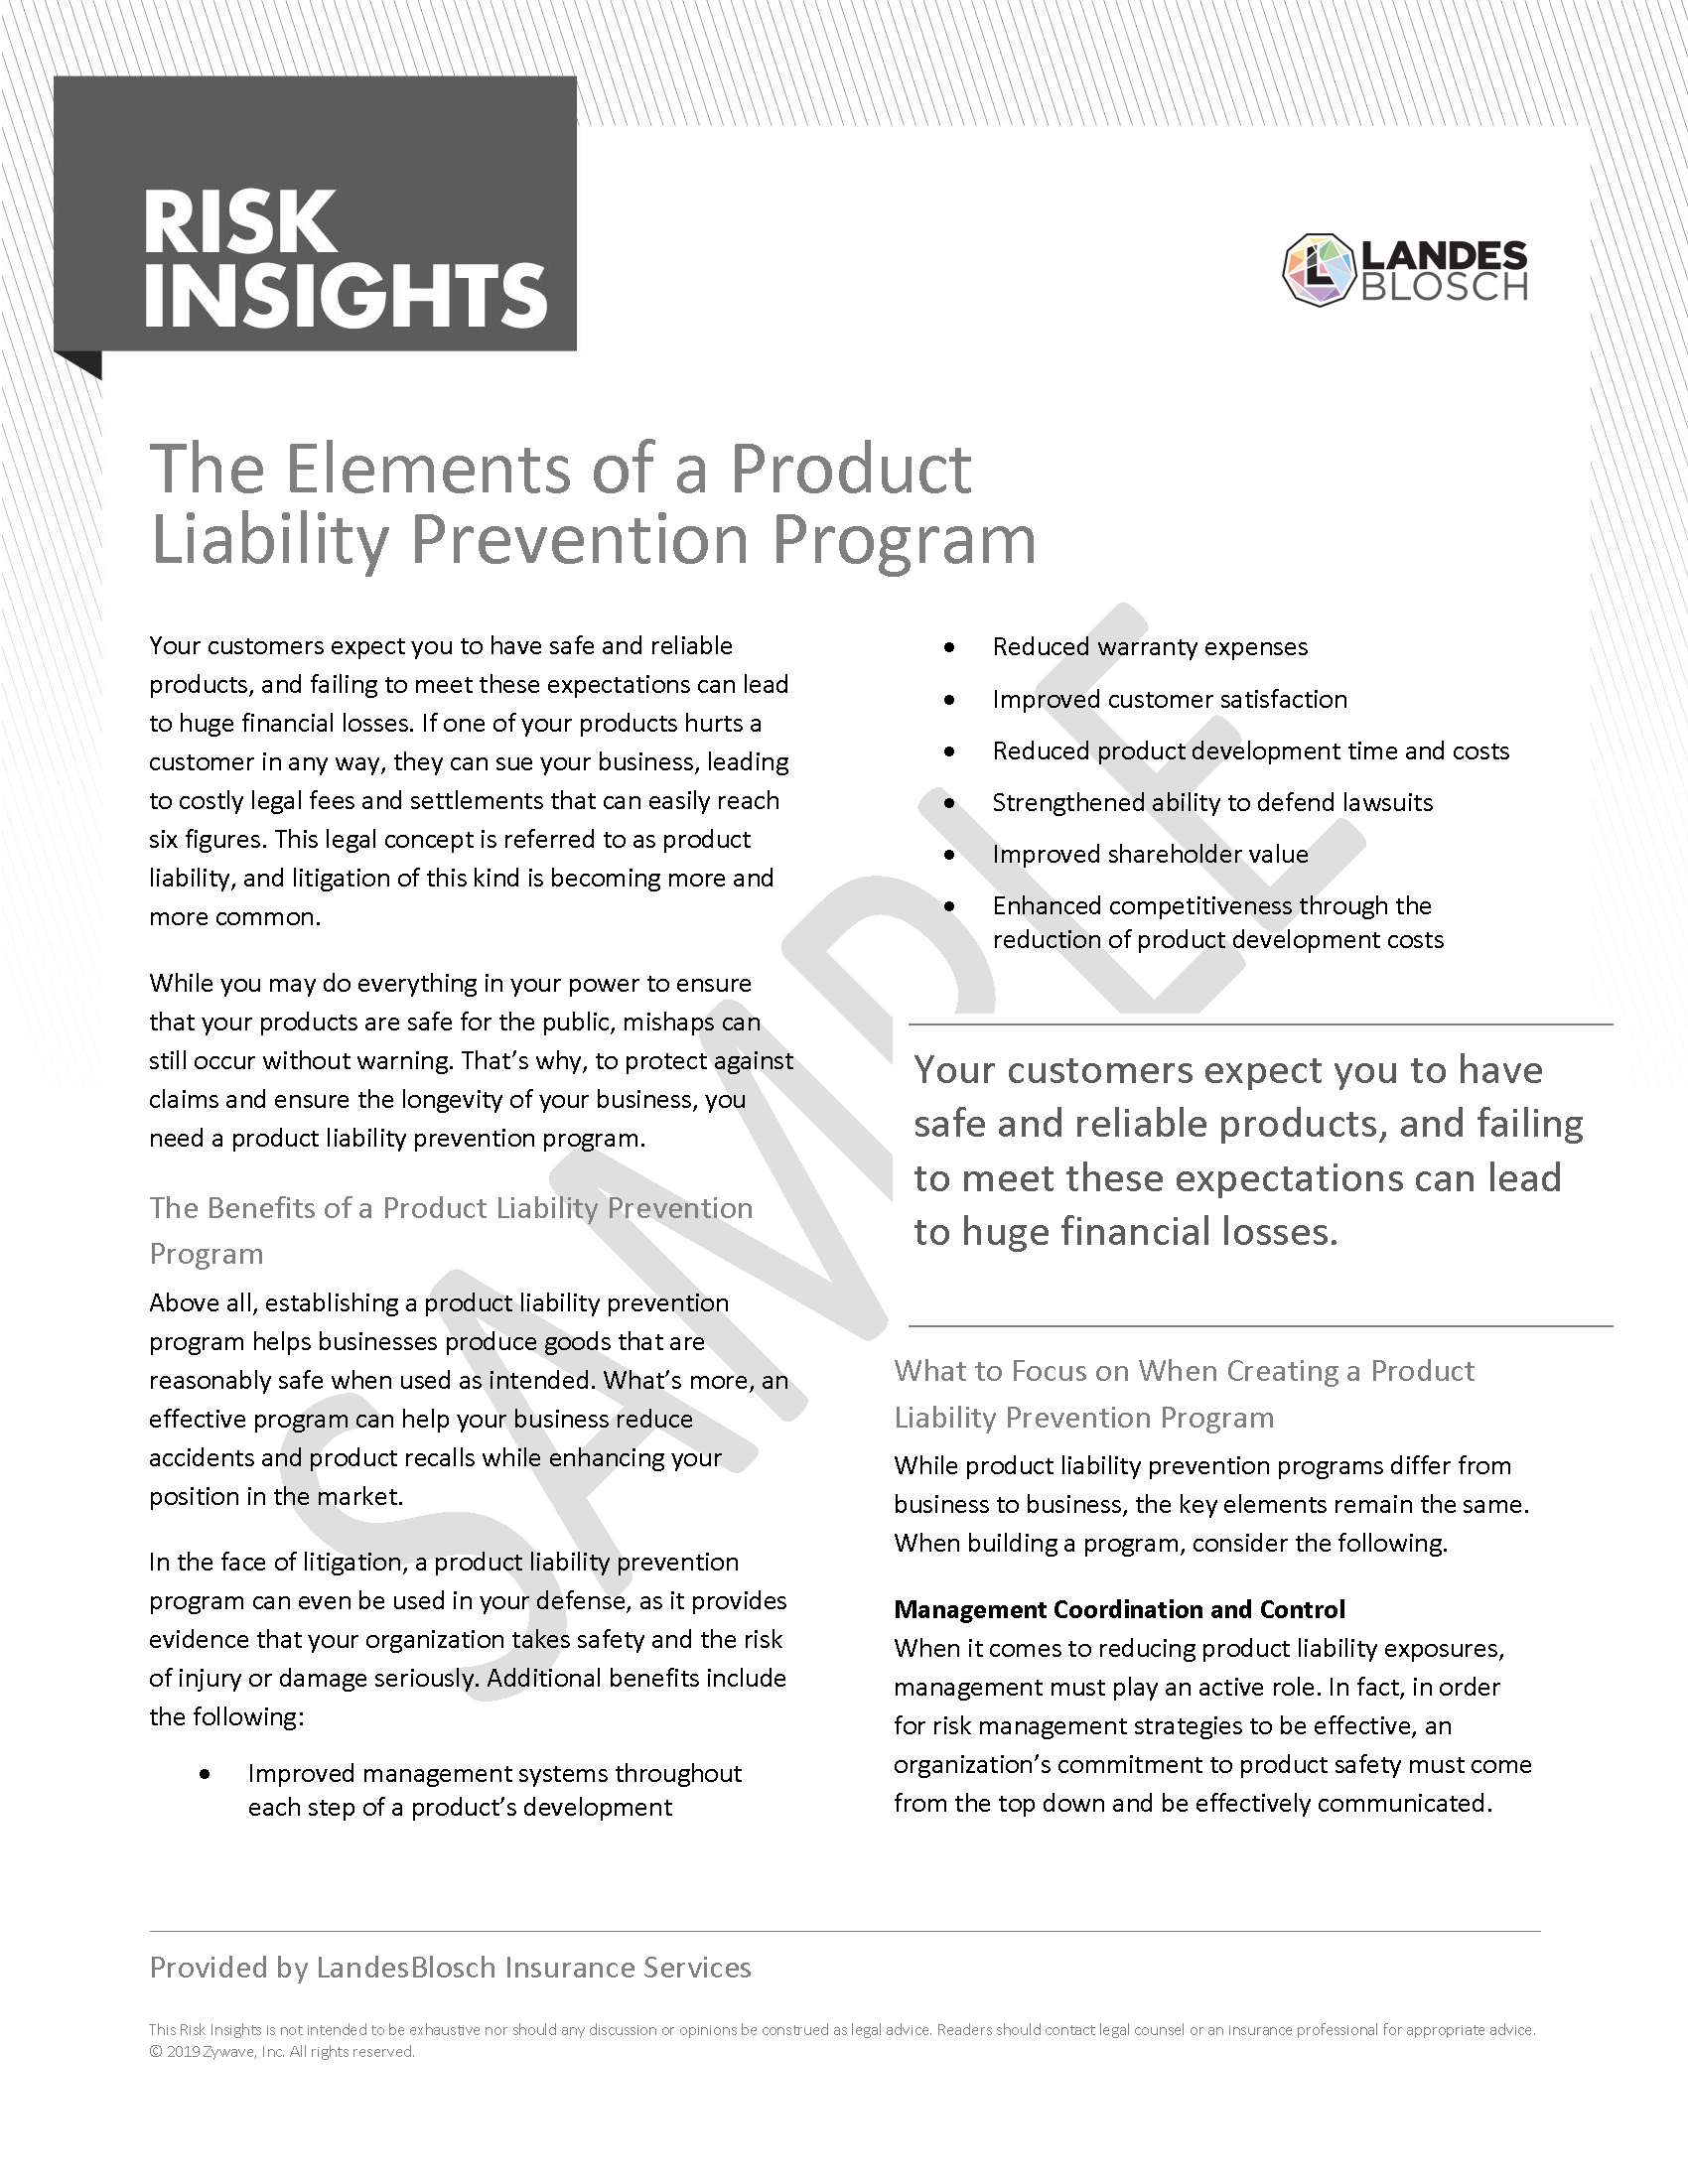 Risk Insights - The Elements of a Product Liability Prevention Program Page 1